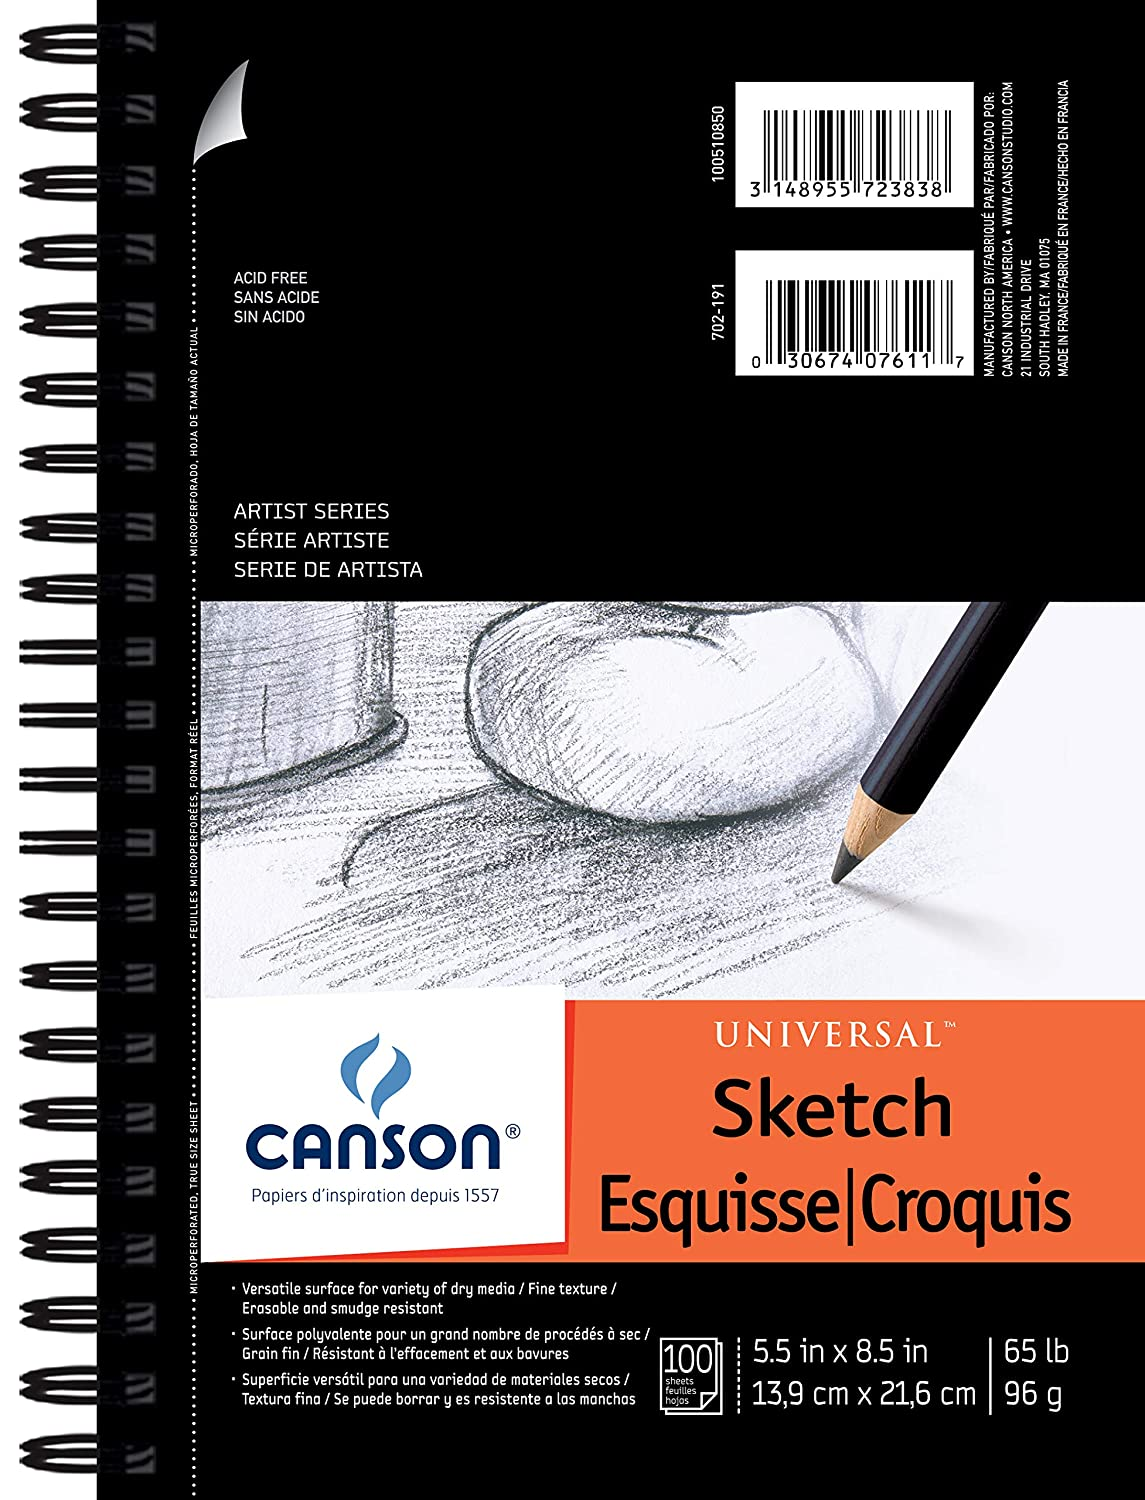 Pro-Art 702-192 Canson 9-Inch by 12-Inch Universal Sketch Book, 100-Sheet